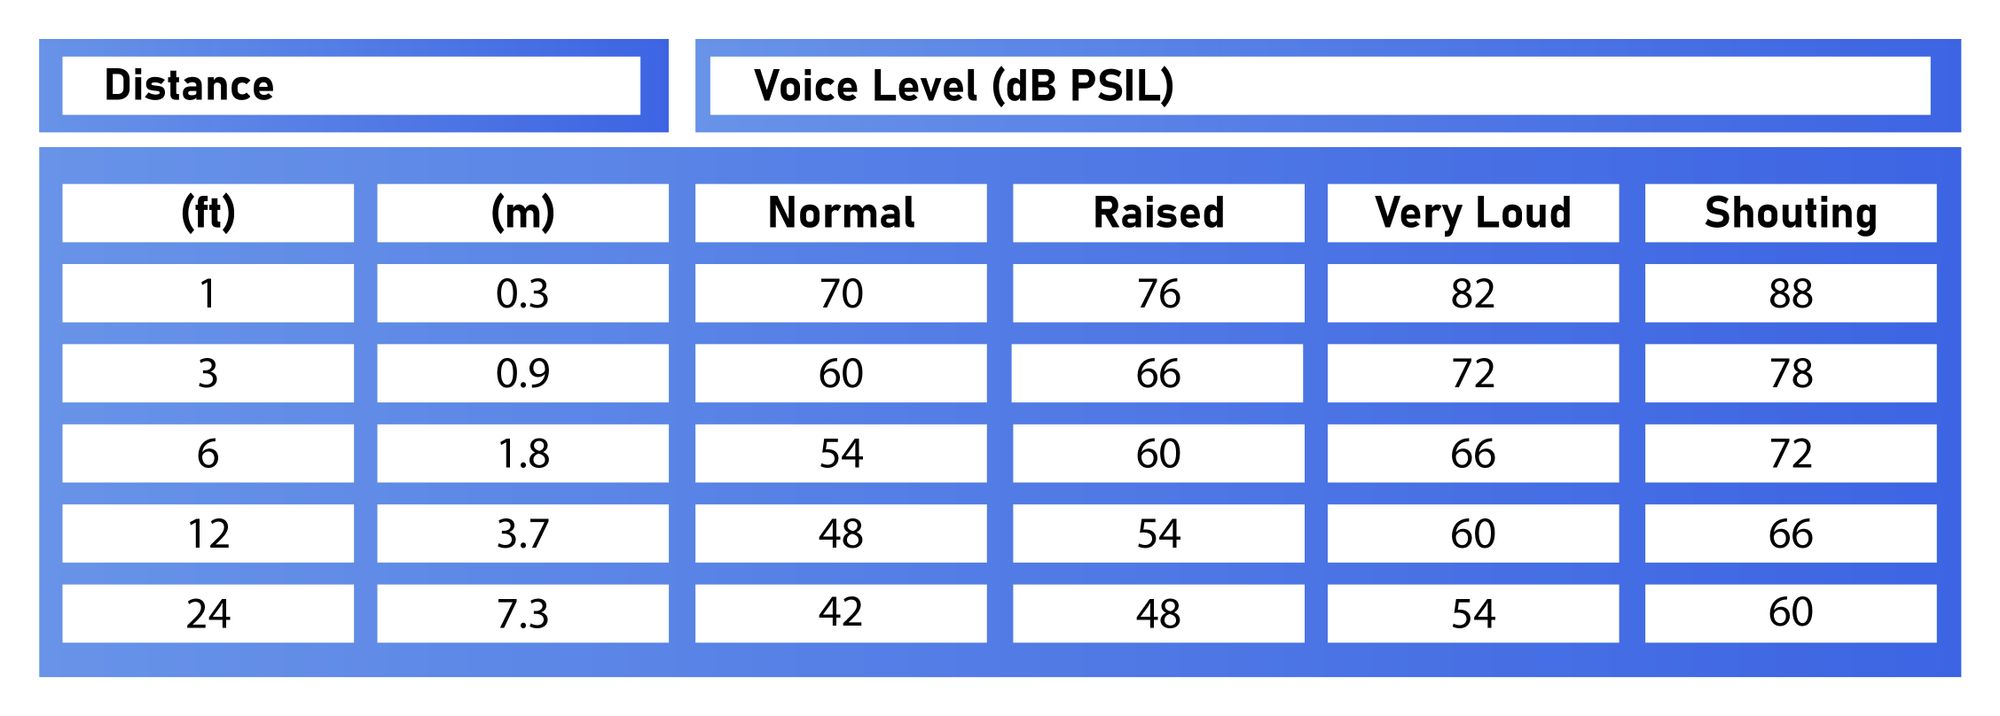 At How Many Decibels A Does A Human Speak Normally